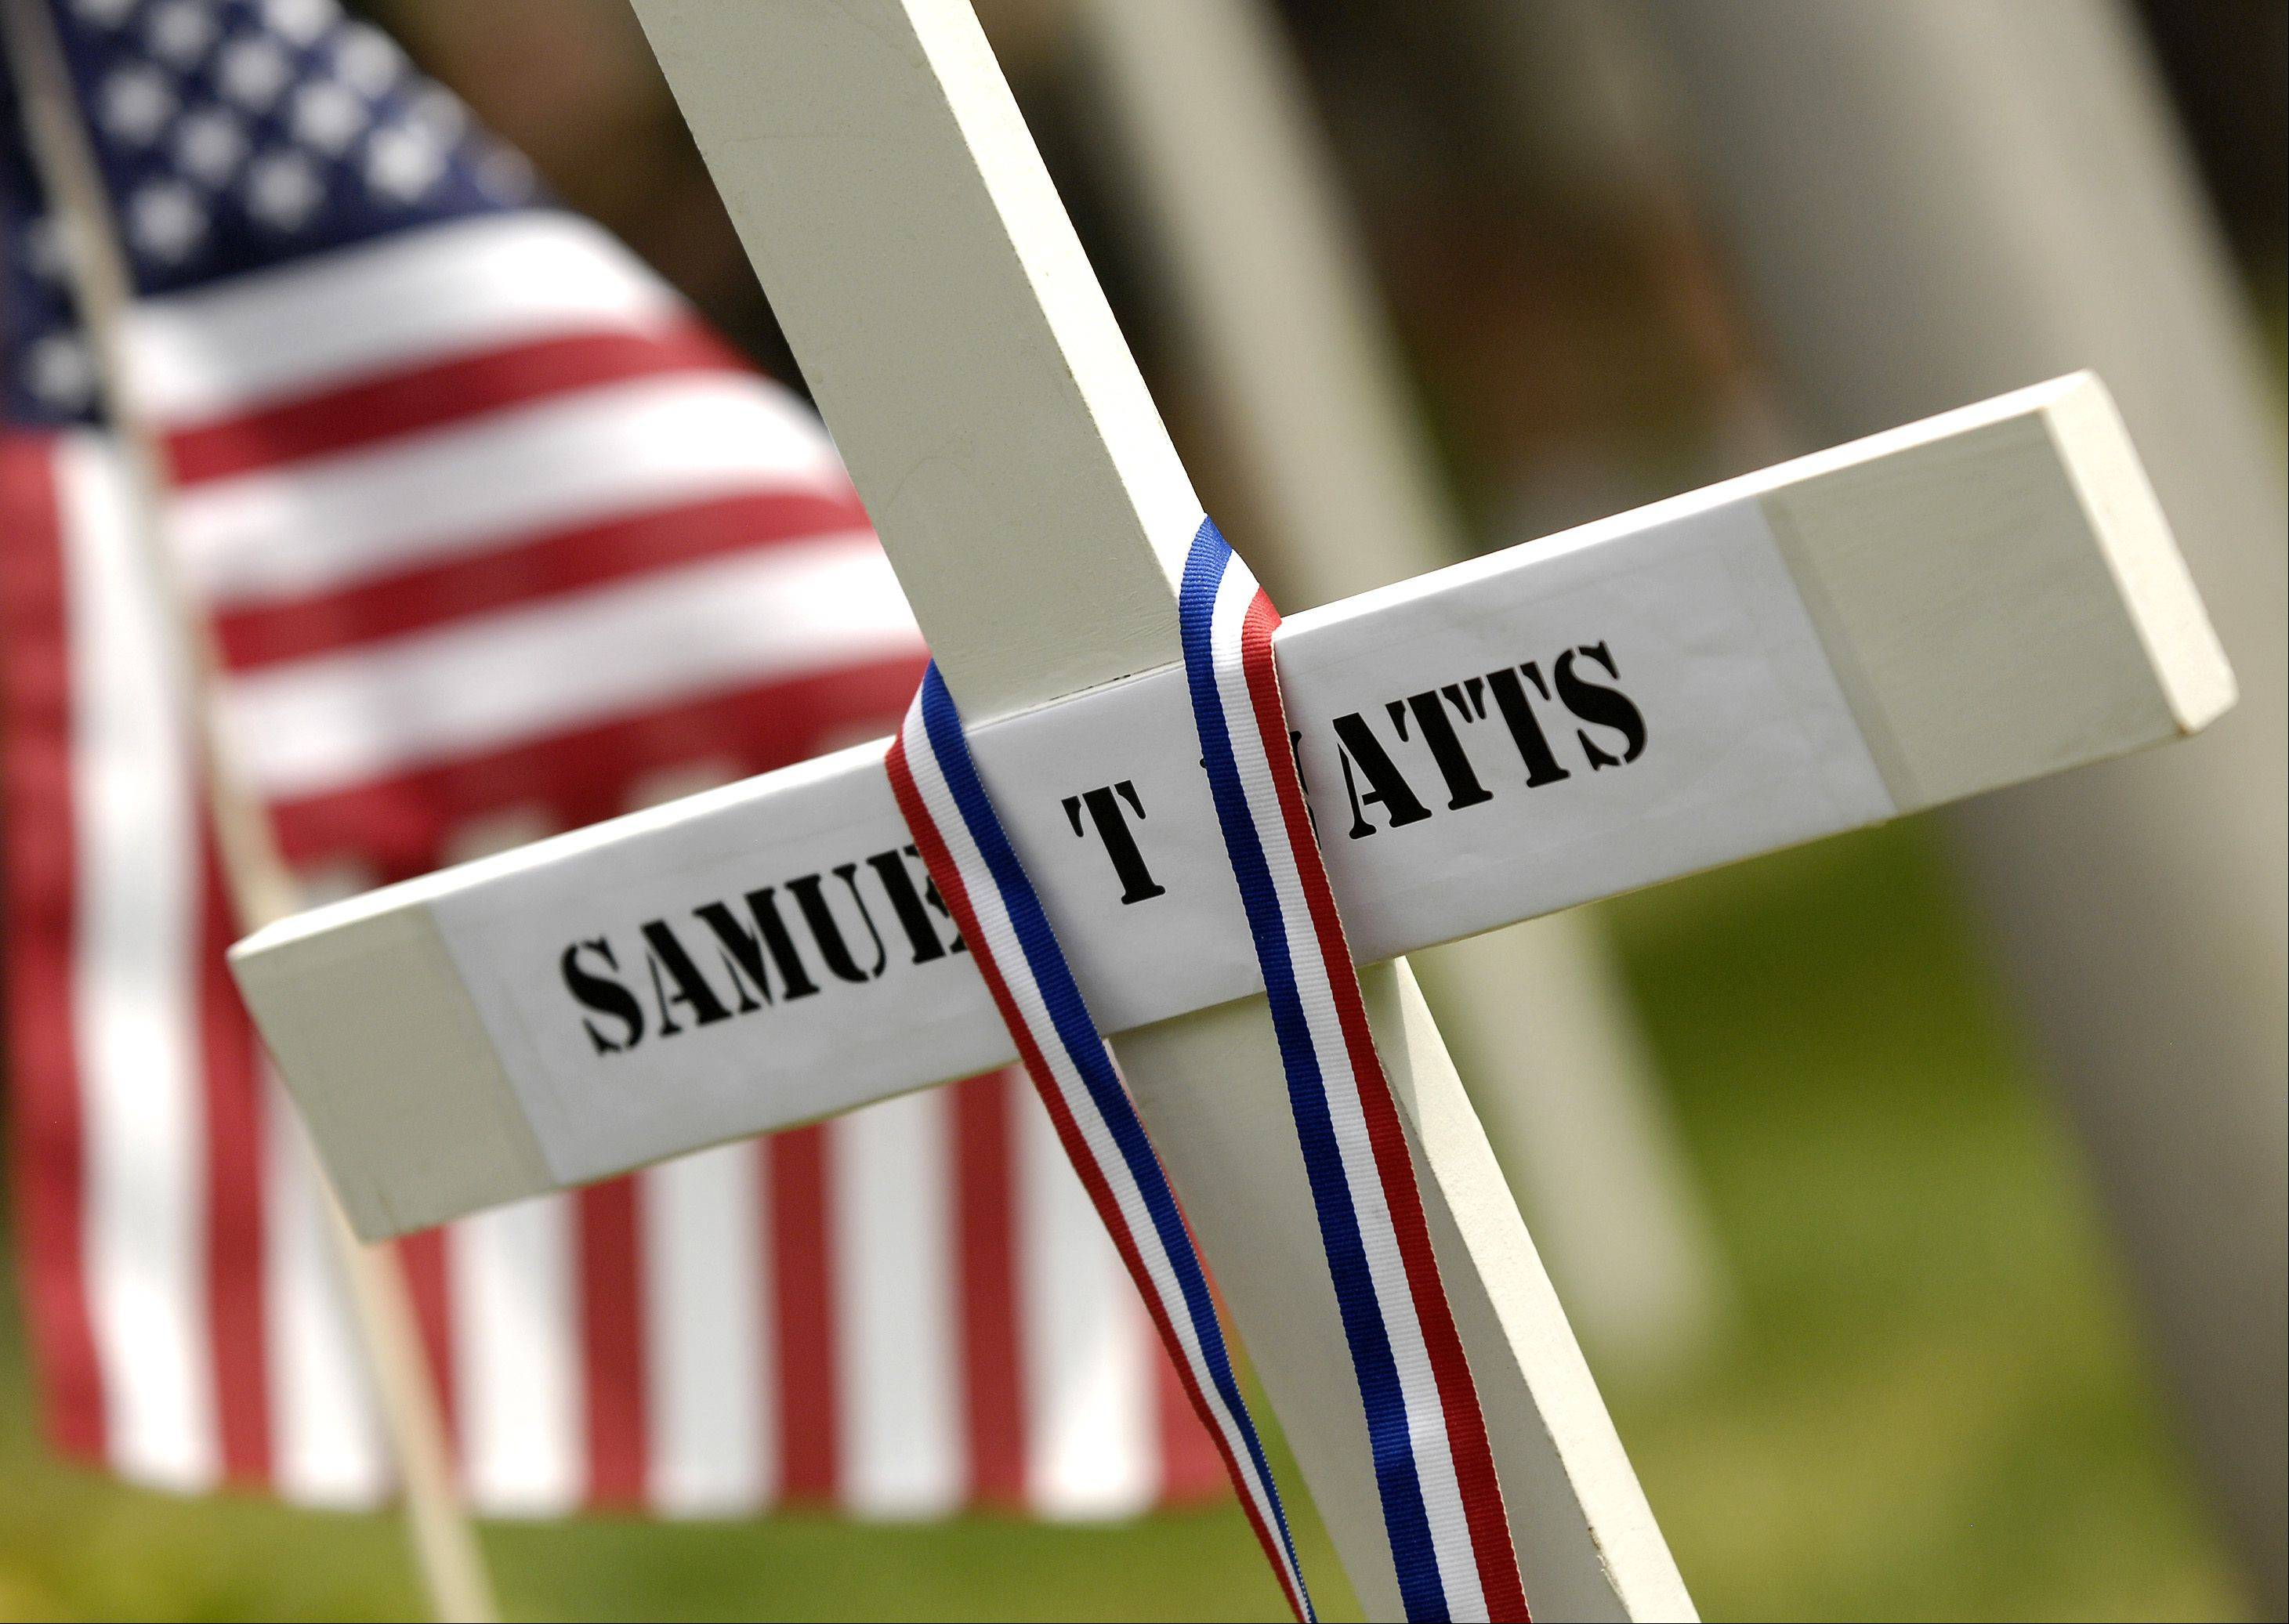 The wooden cross in honor of U.S. Army Spc. Samuel Watts, who died Saturday from injuries he suffered last month from a roadside bomb in Afghanistan, was placed in the Wheaton Cemetery by members of American Legion and the Veterans of Foreign Wars.